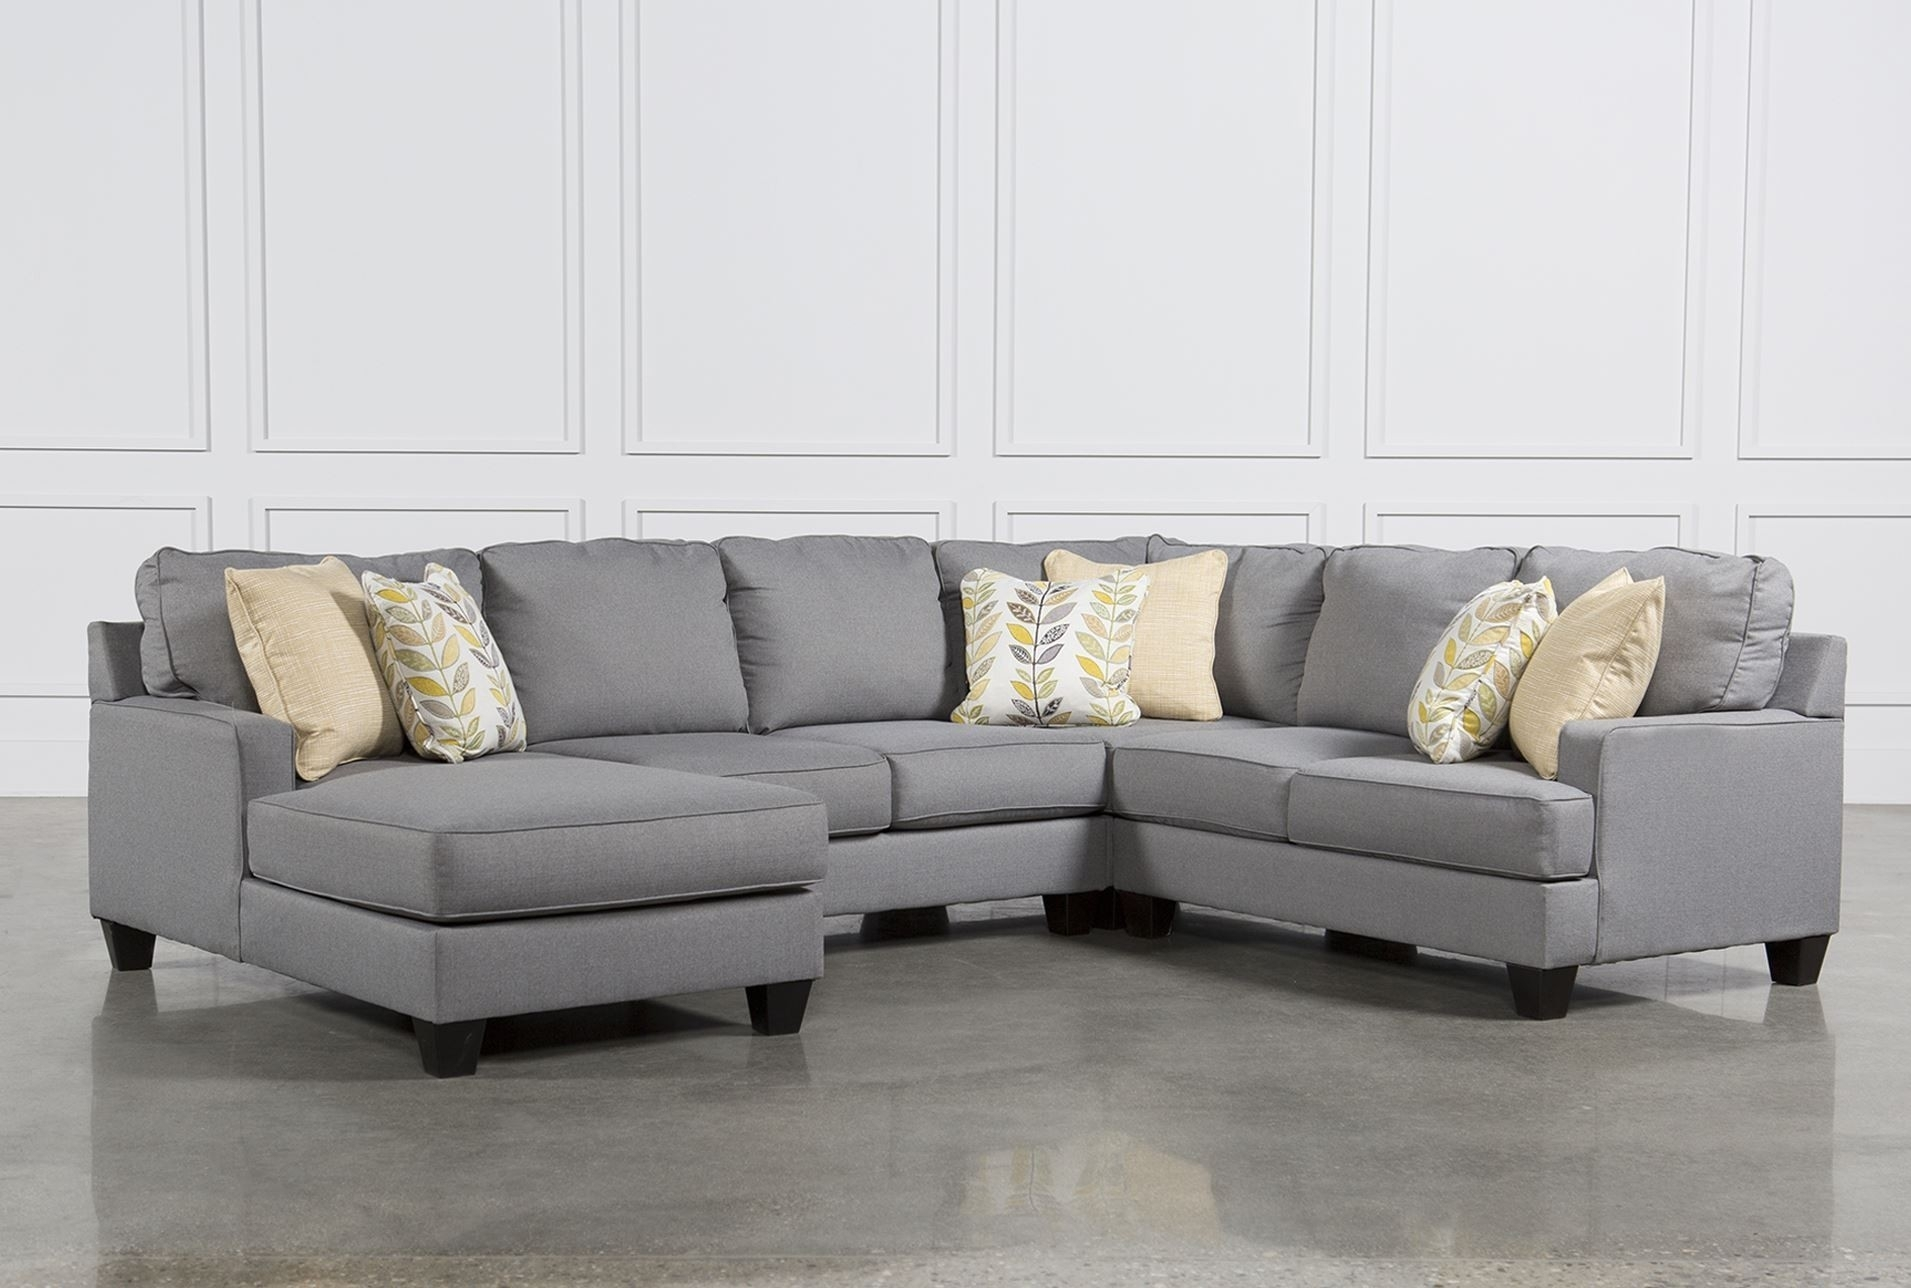 Living Spaces Sectional Sofas – Implantologiabogota (Image 16 of 25)